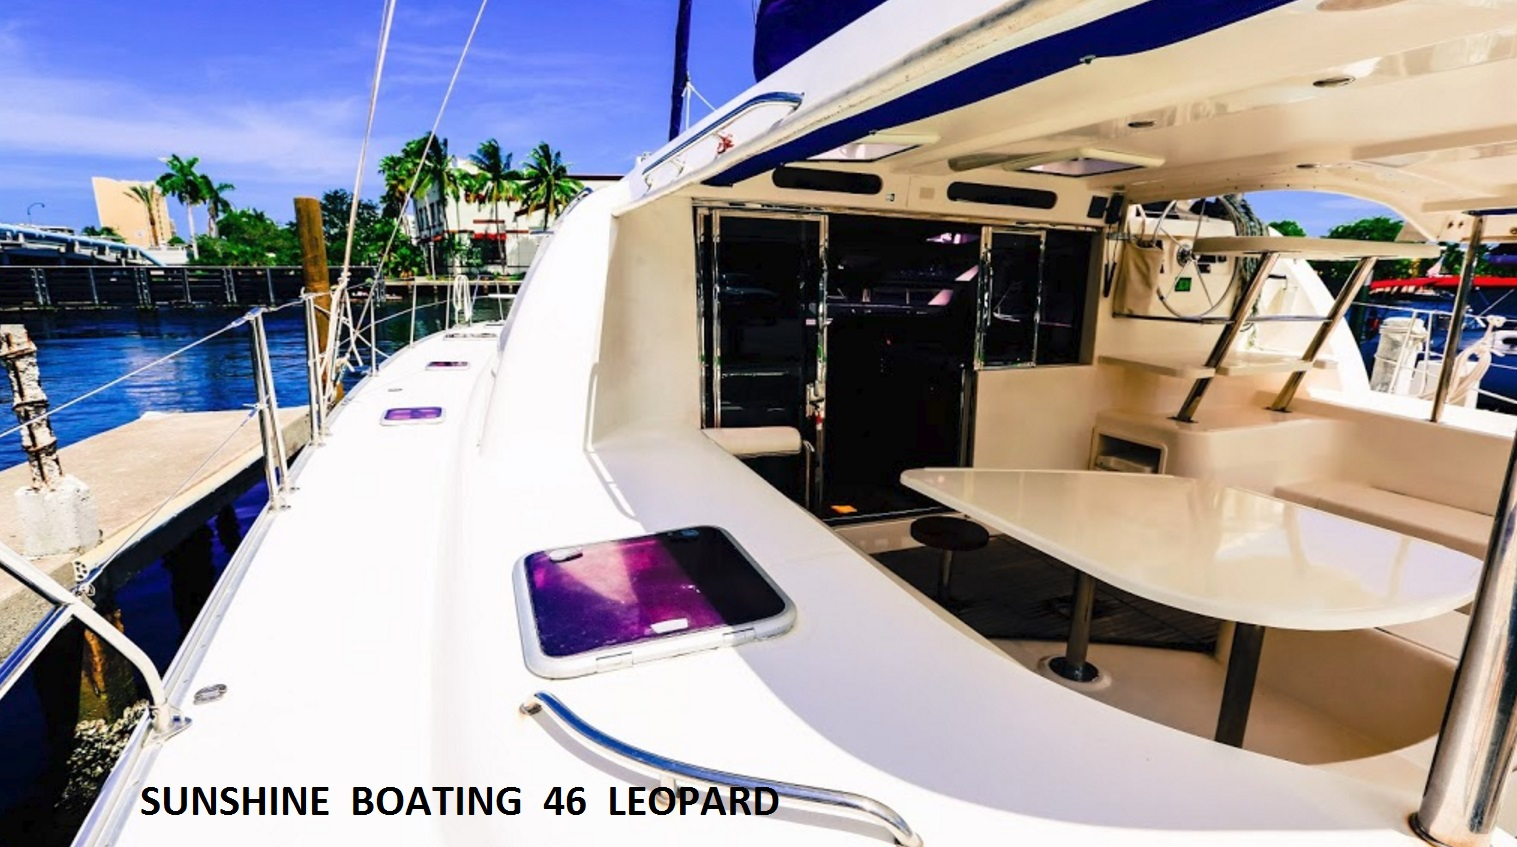 sunshine-boating-leopard-46-fll-d